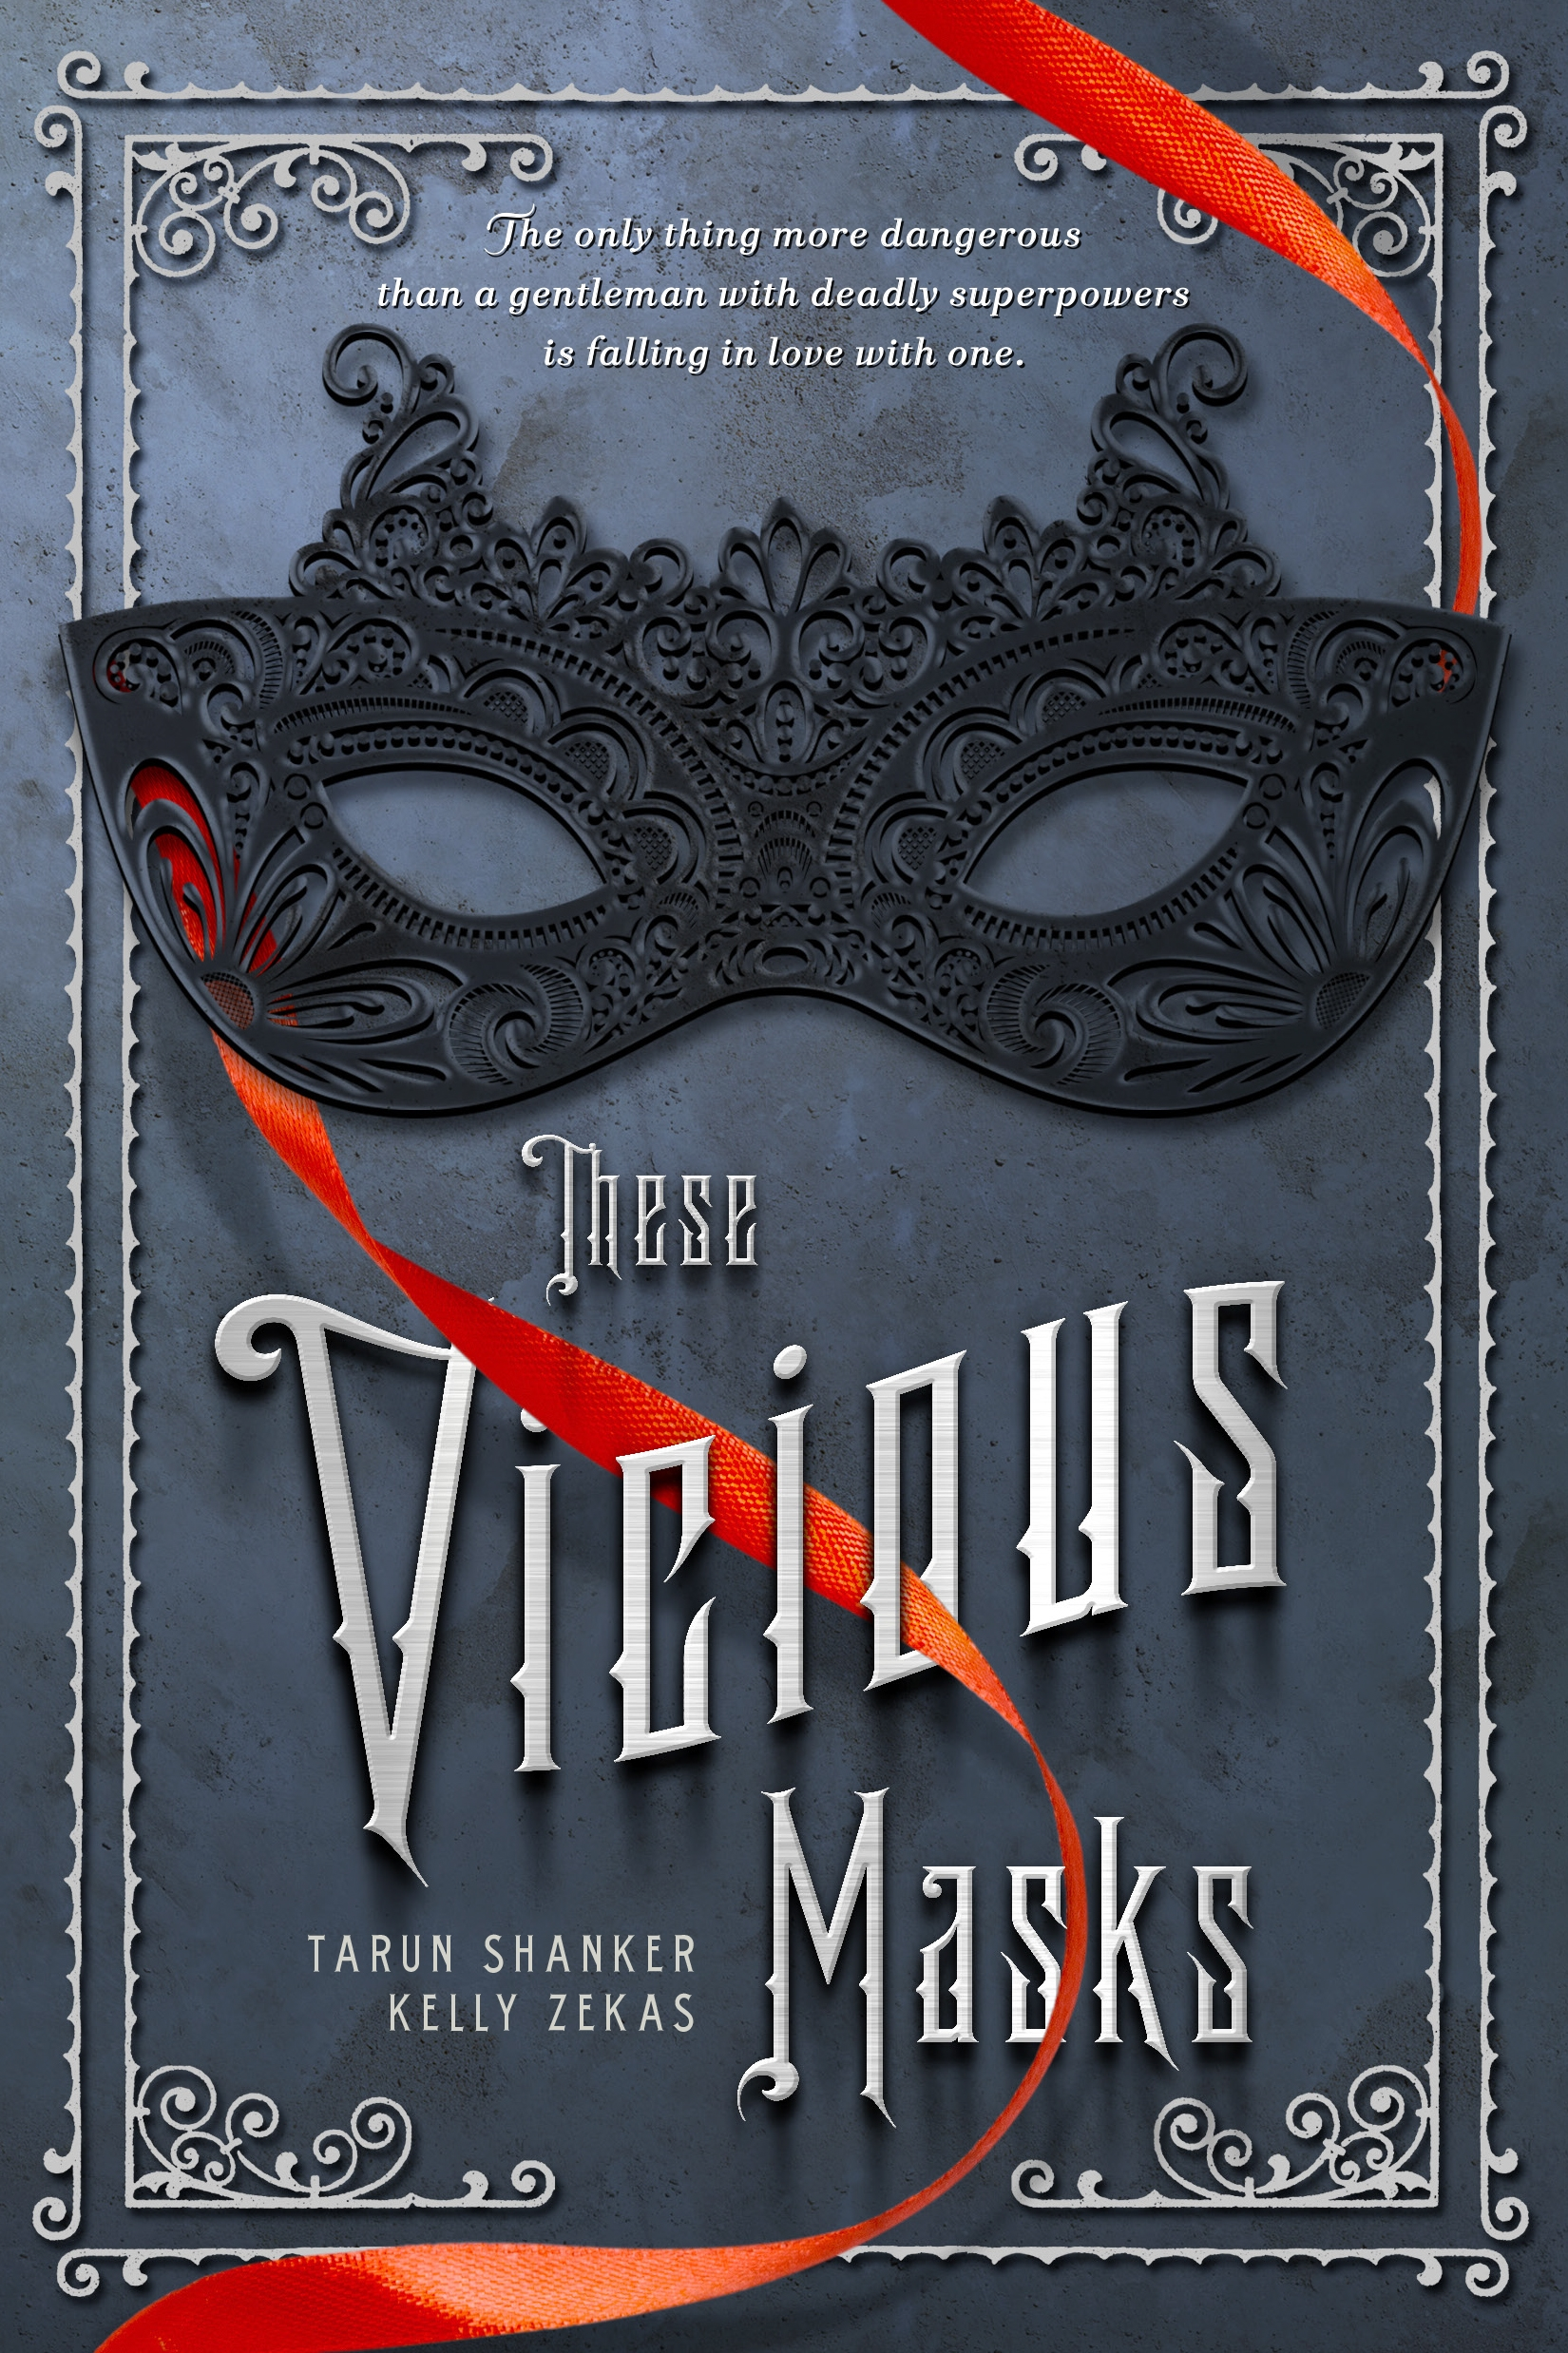 #9 Waiting on… These Vicious Masks by Tarun Shanker & Kelly Zekas